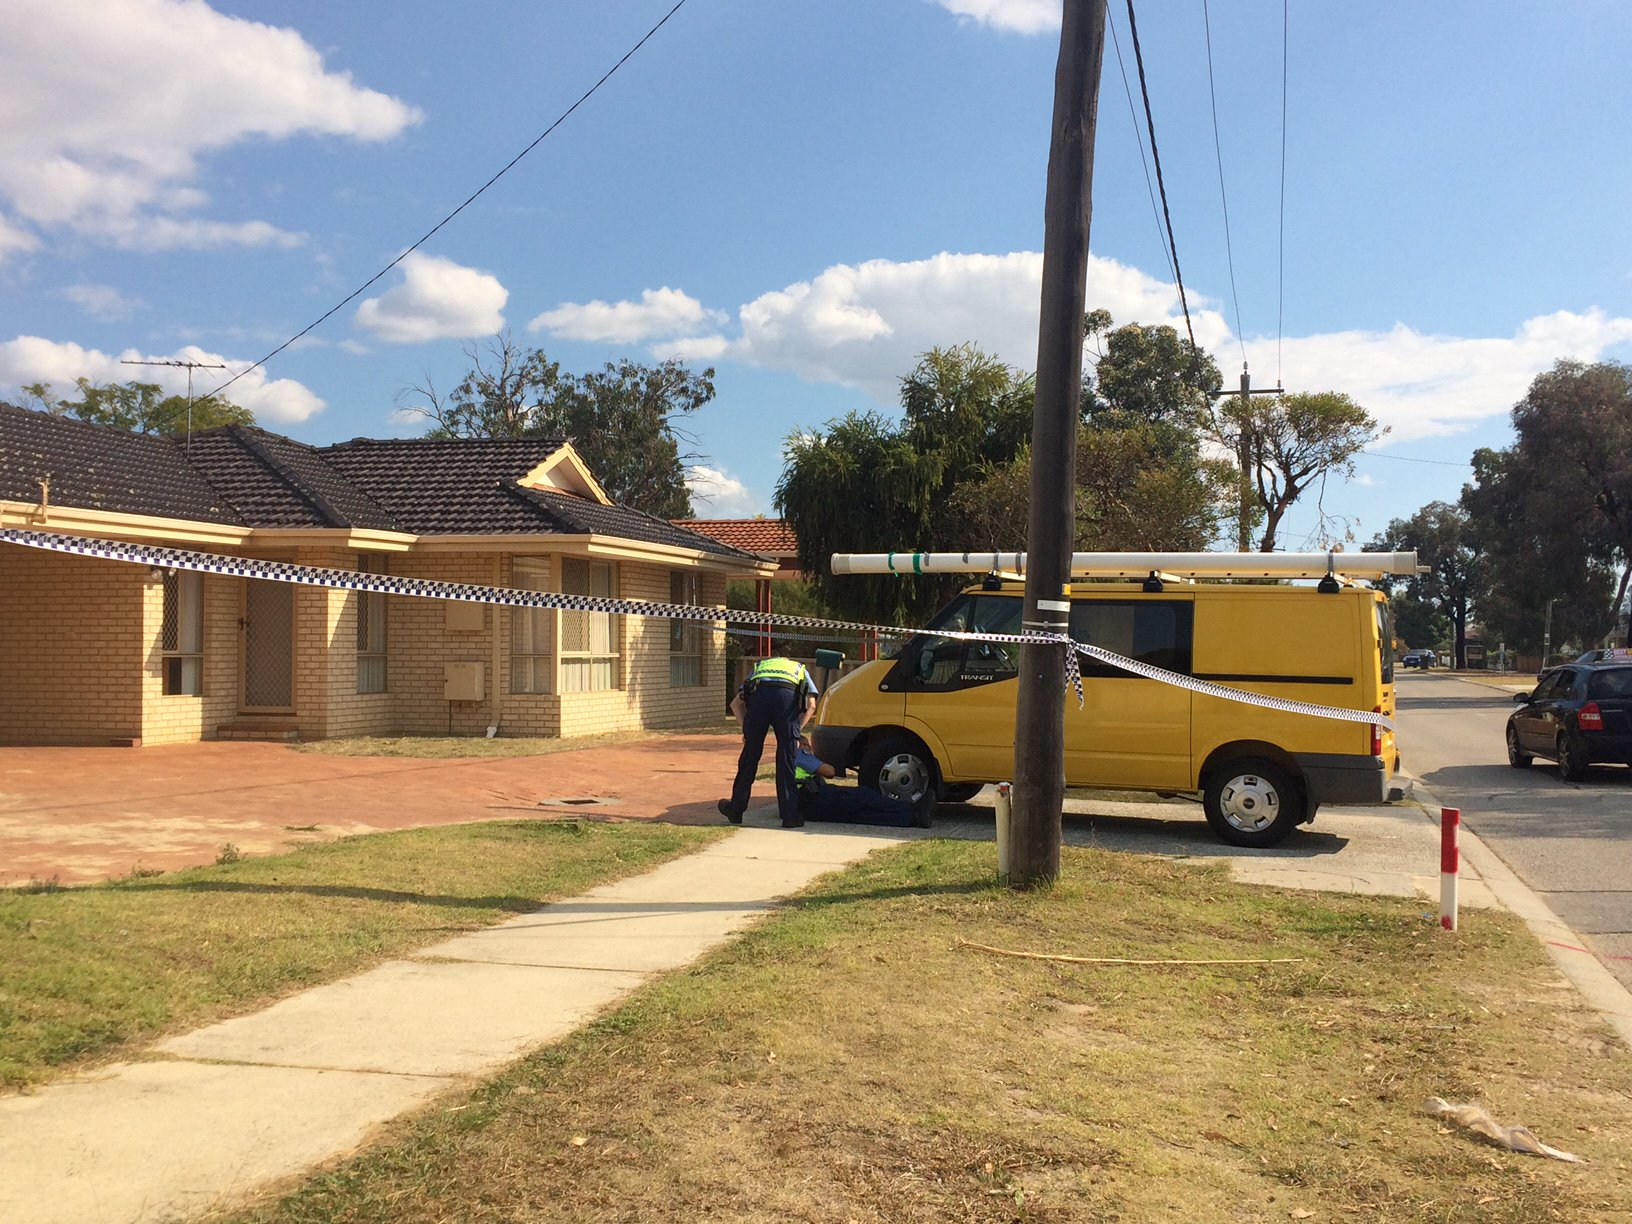 Police investigate in Midland. Photo: Seven News/Twitter